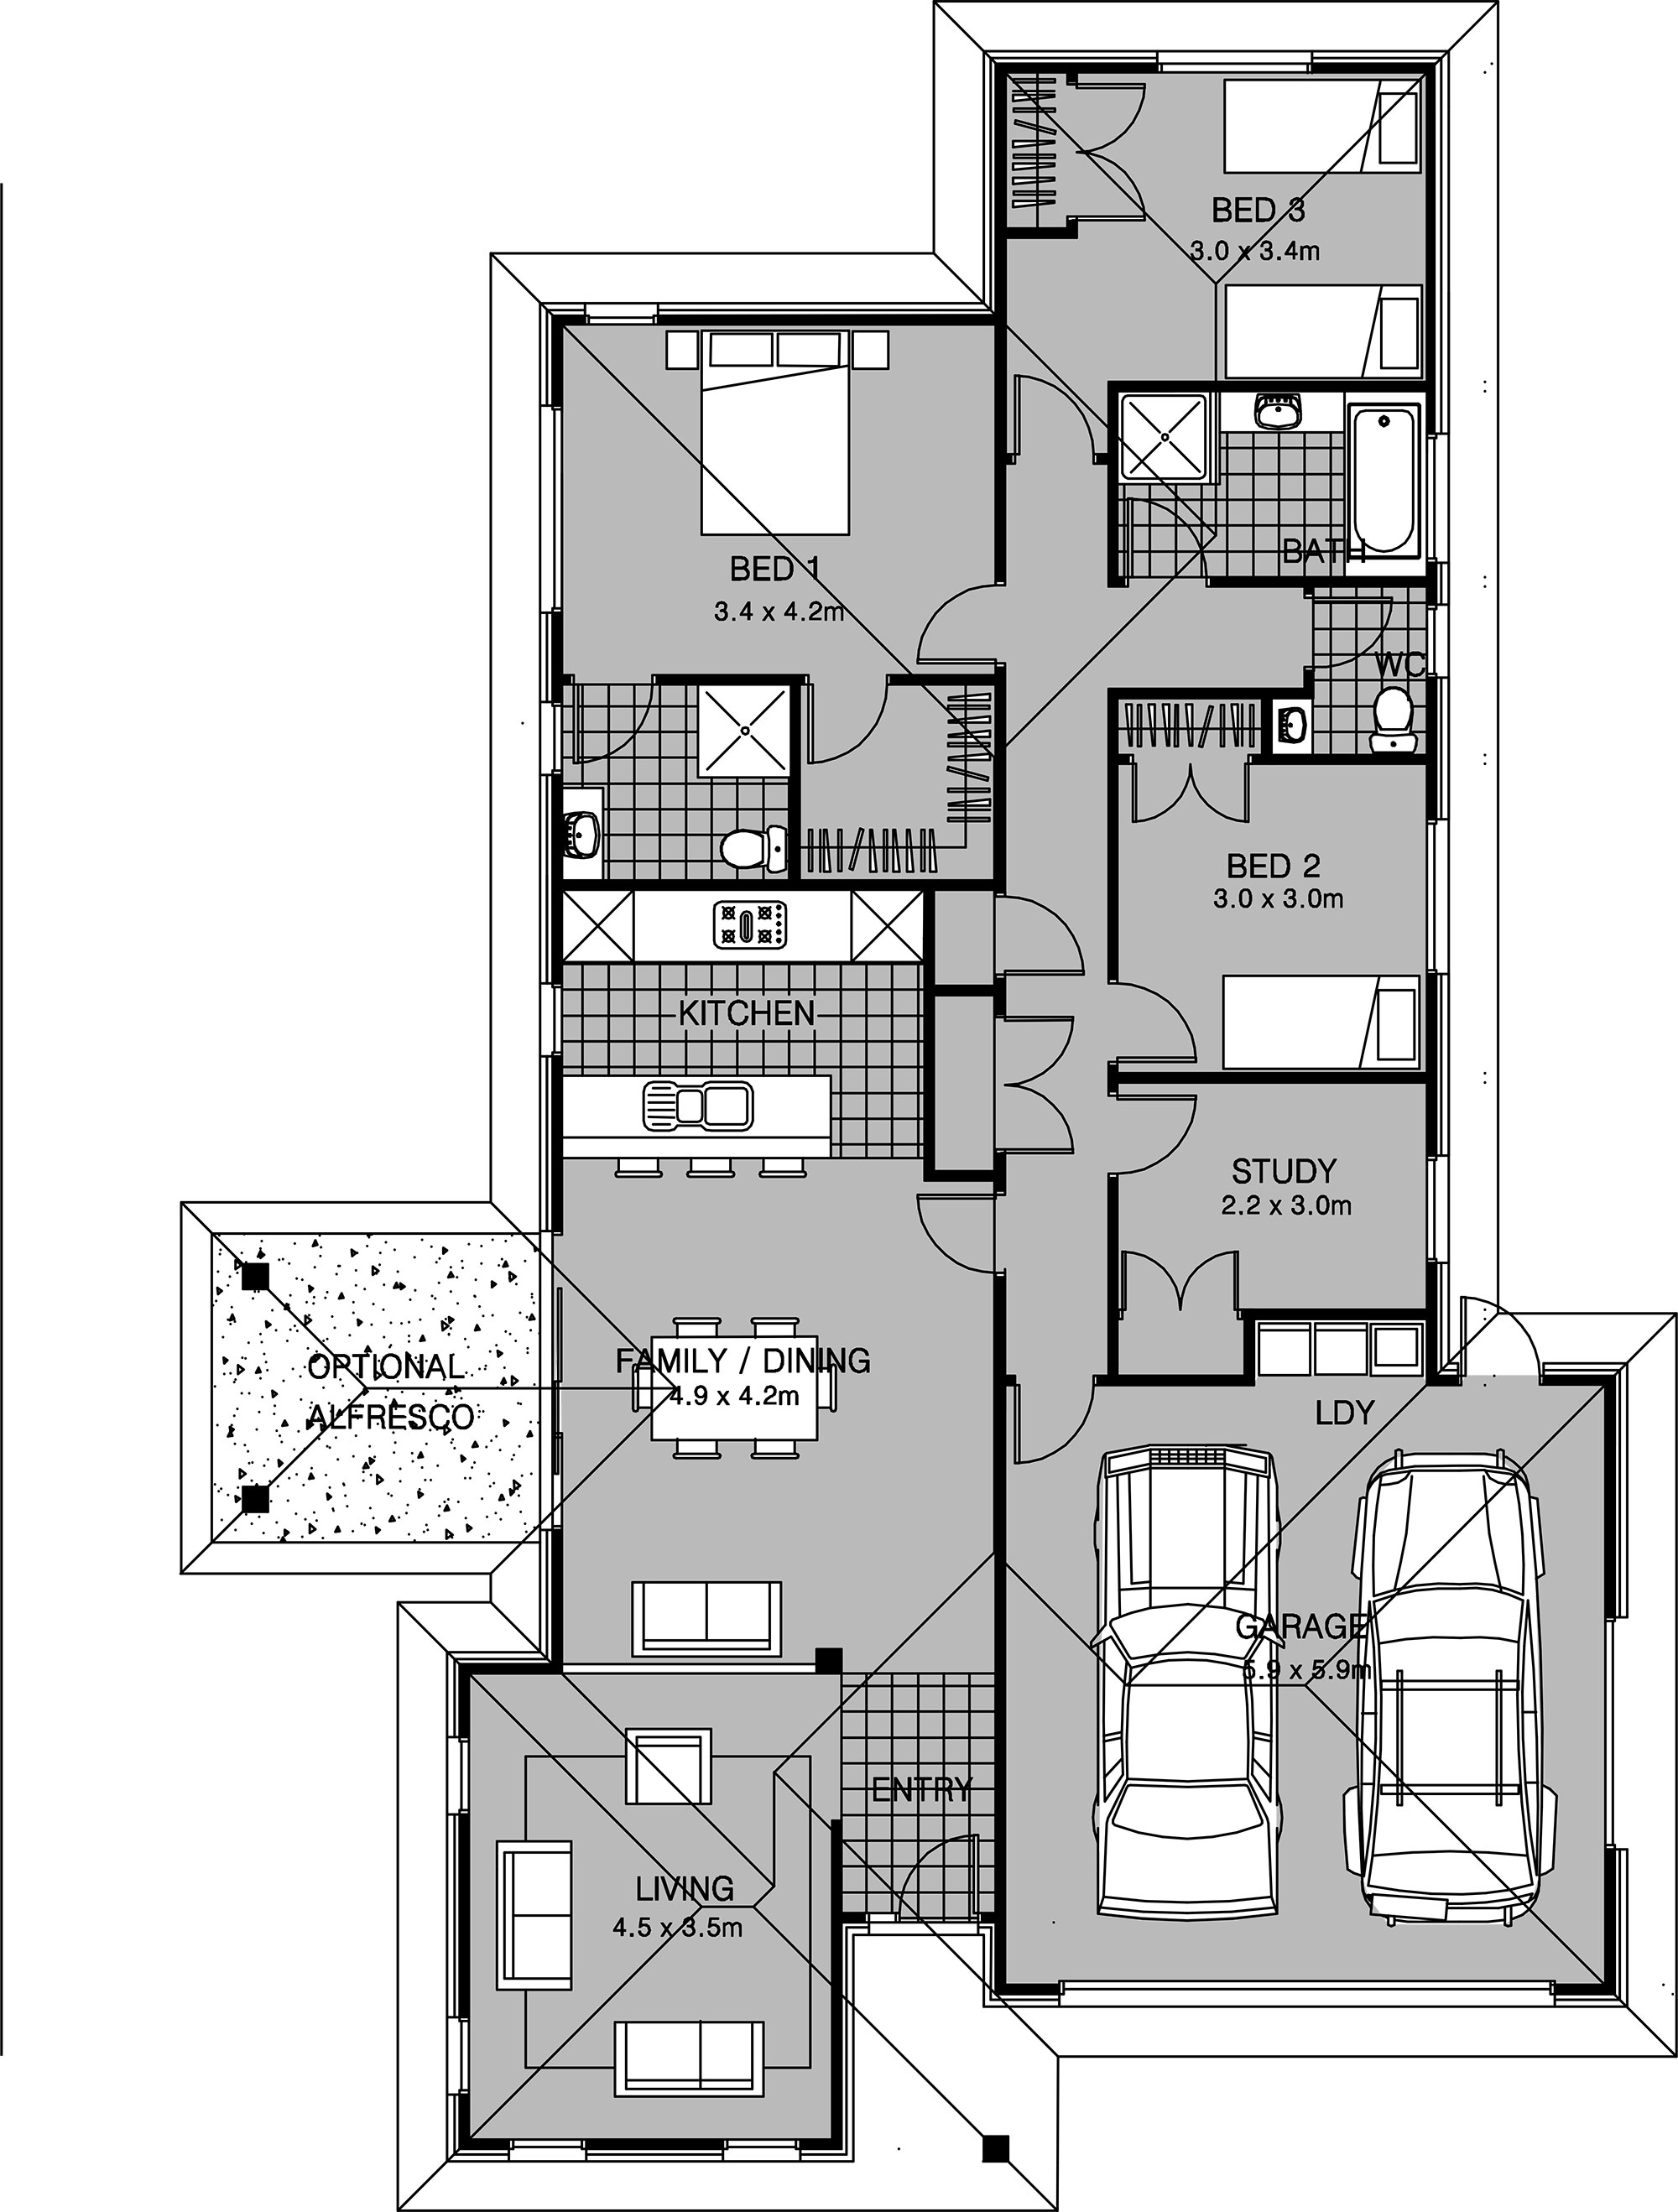 175m2 ultimate homes nz for 4 bedroom house plans nz